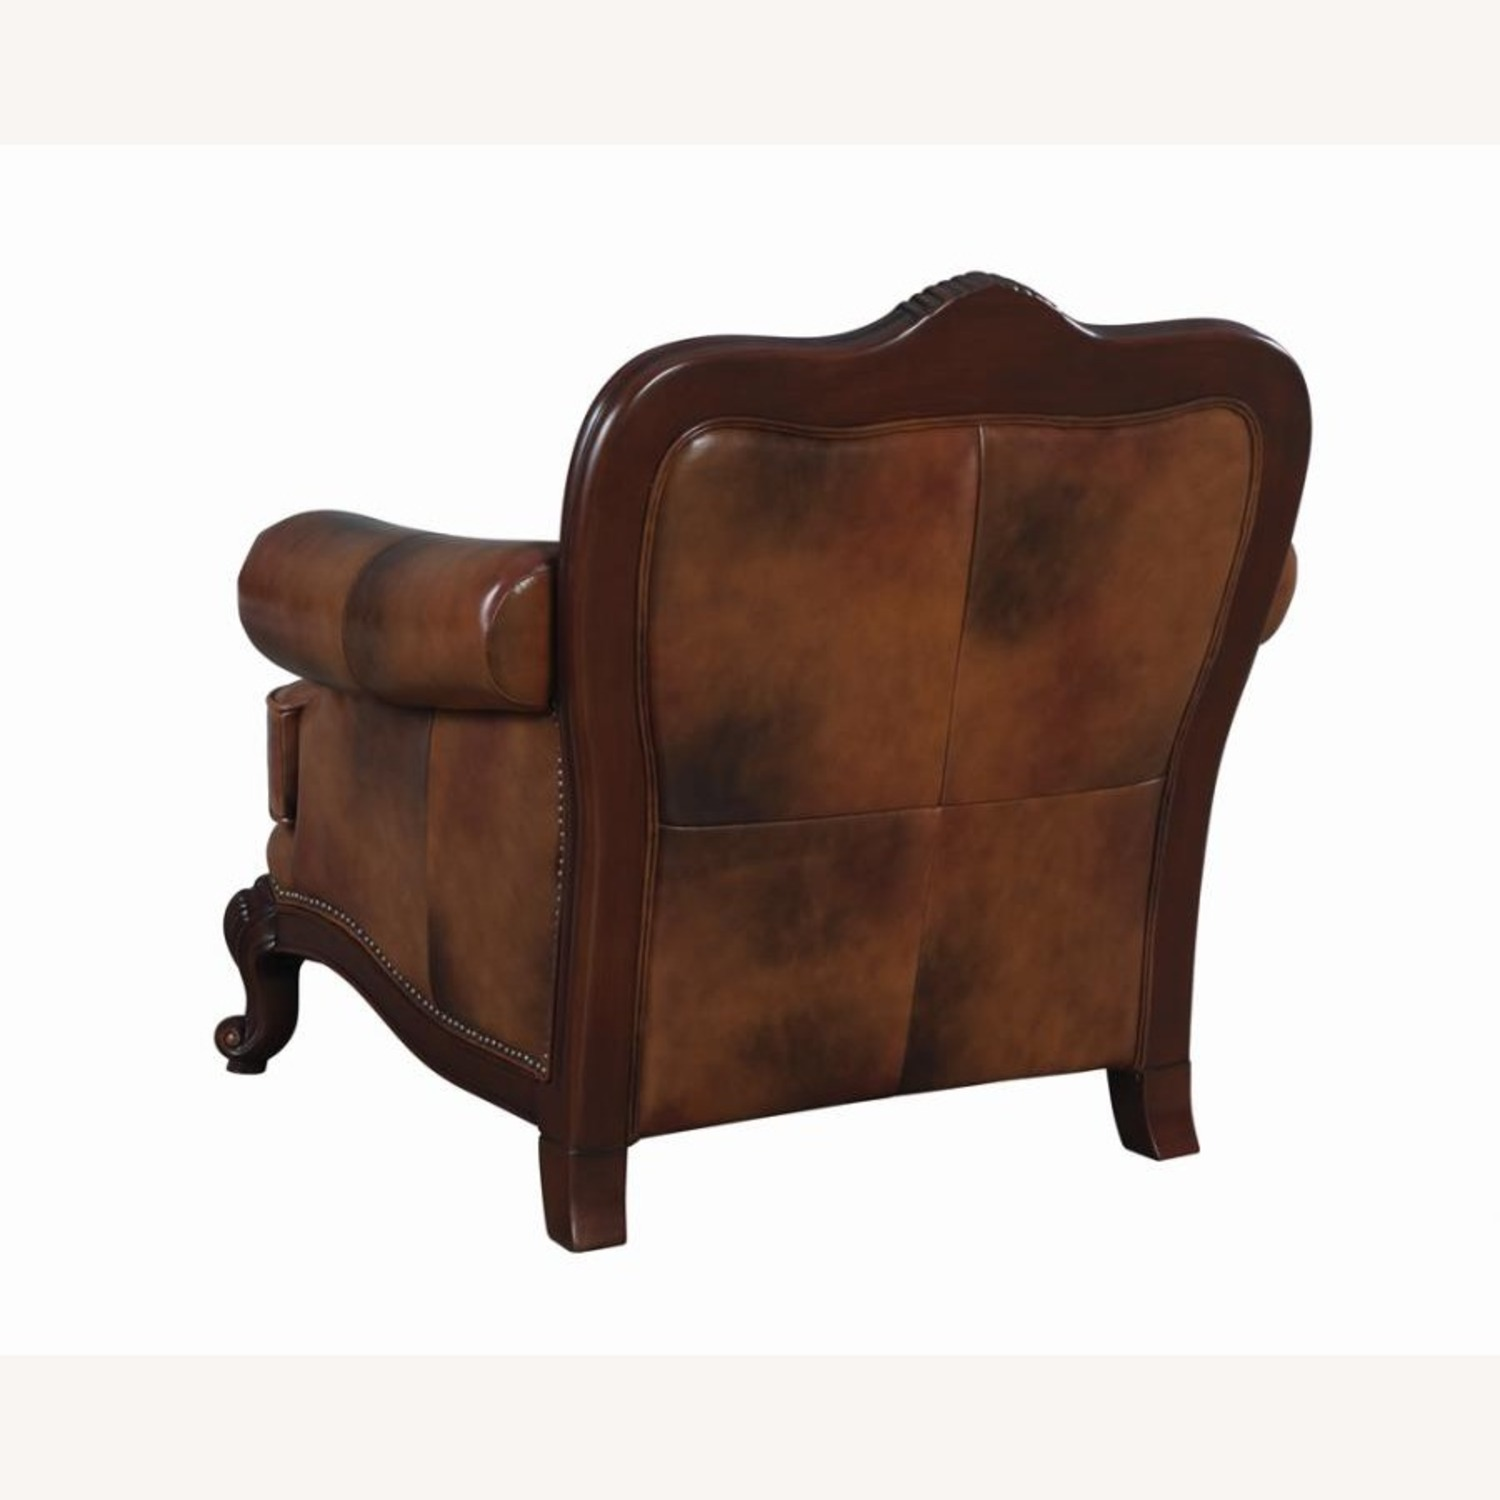 Chair In Tri-Tone Leather Finish - image-1